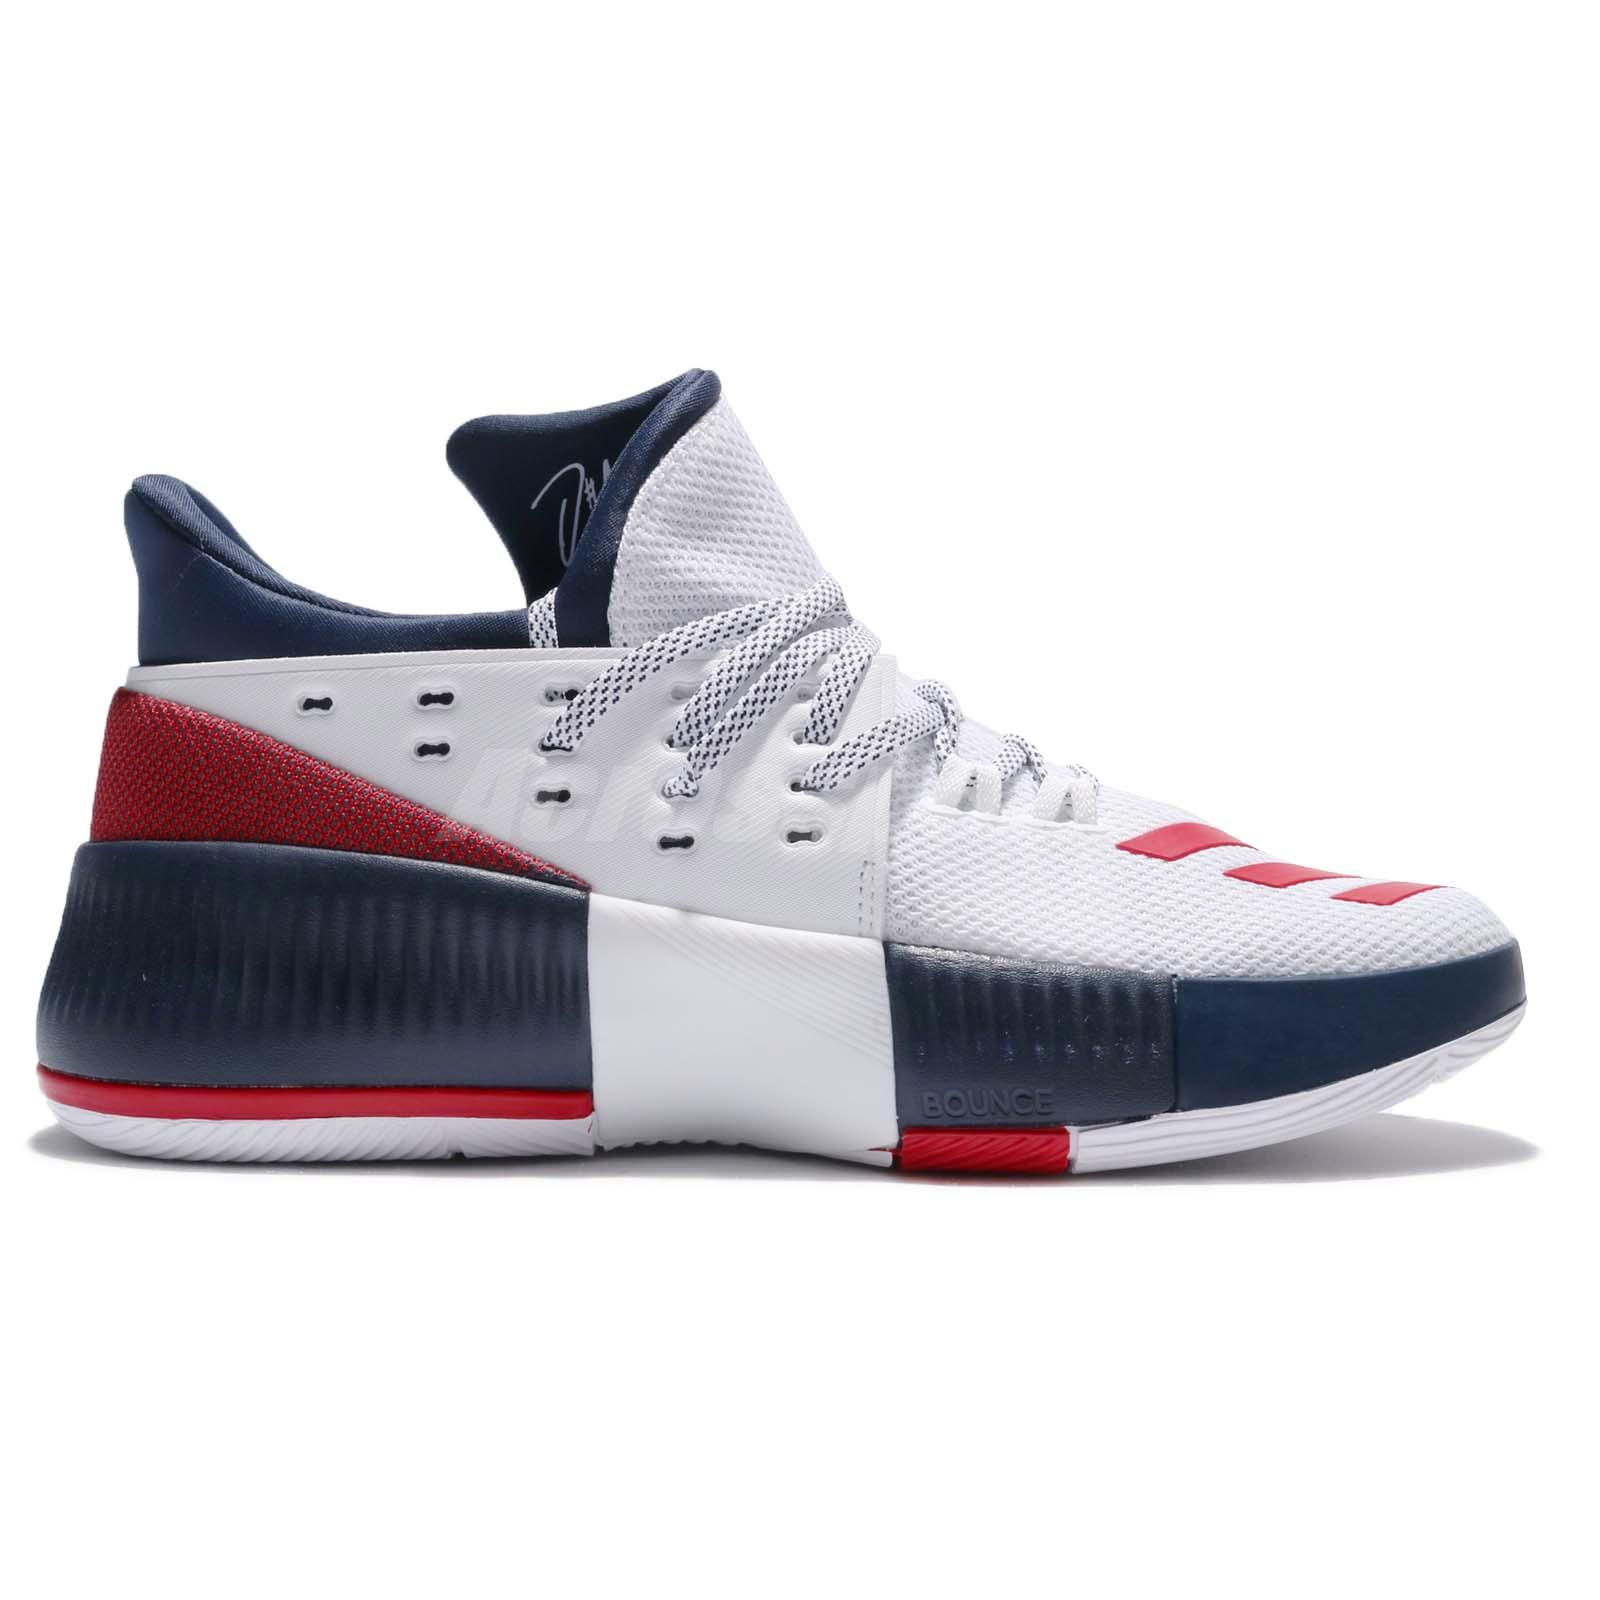 0245319839ba adidas Dame 3 J Damian Lillard Navy Red White Kids Basketball Shoes ...